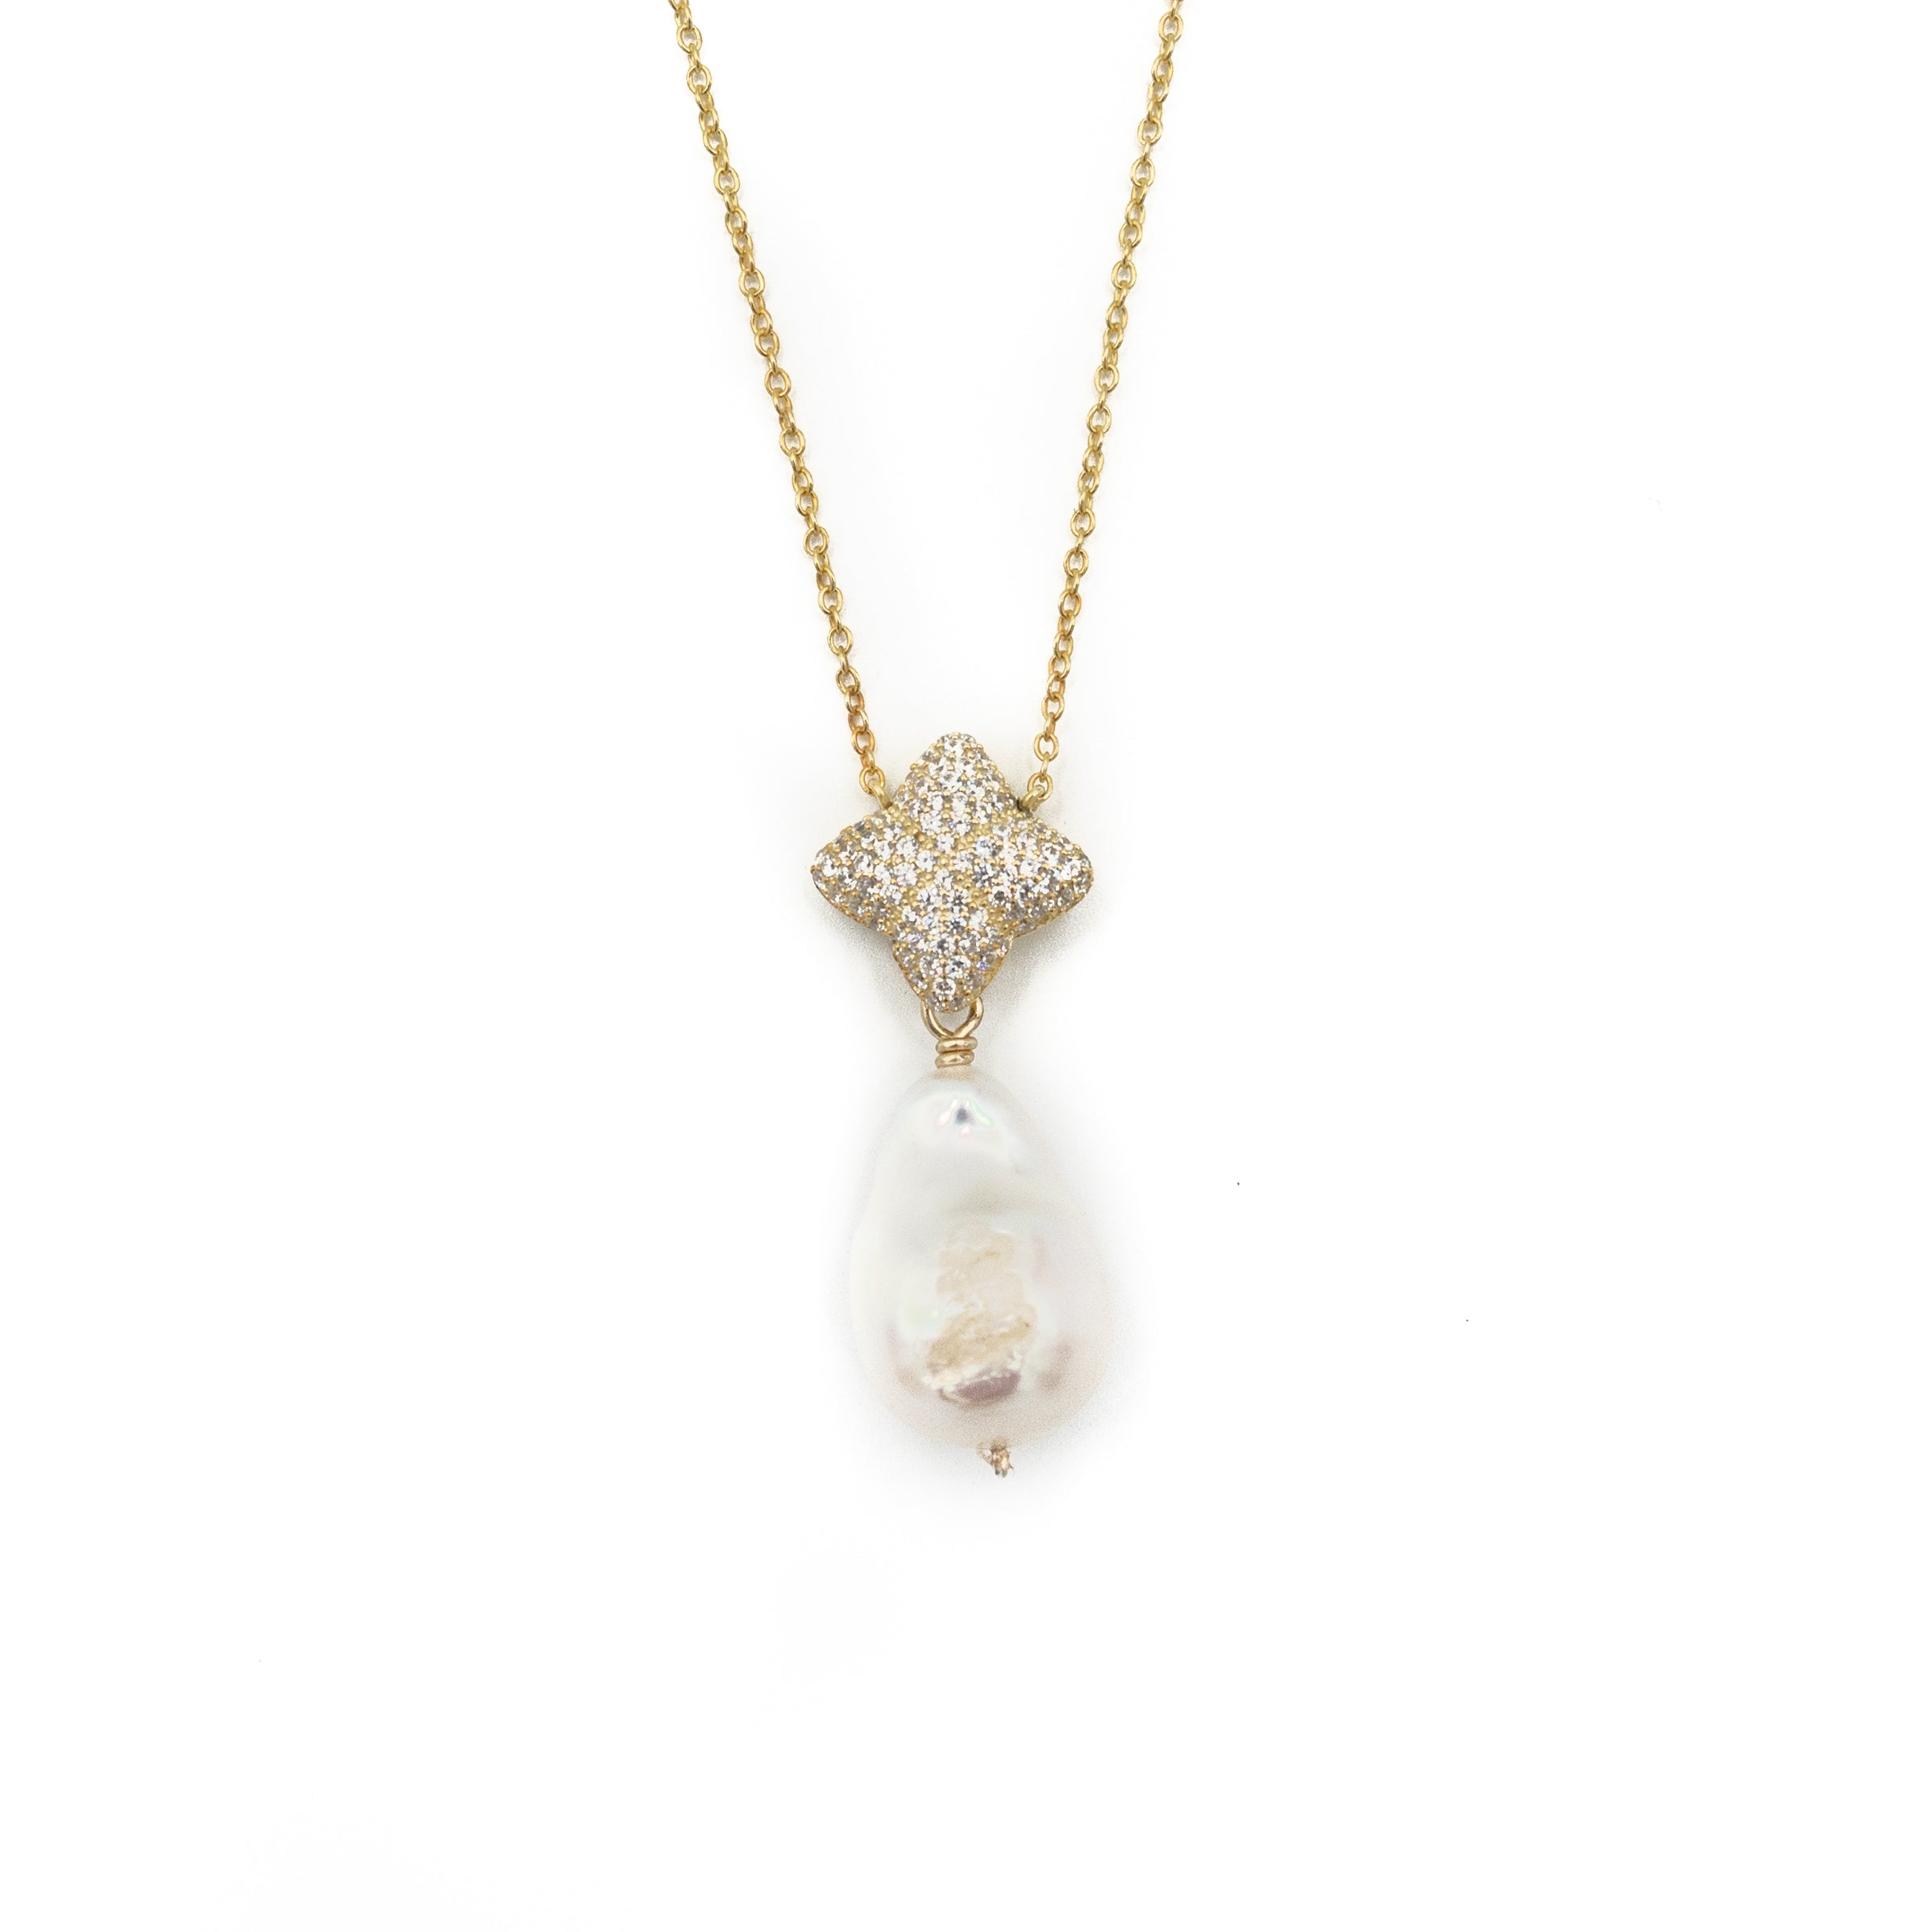 Alicia Necklace, Gold with Baroque Pearl Charm